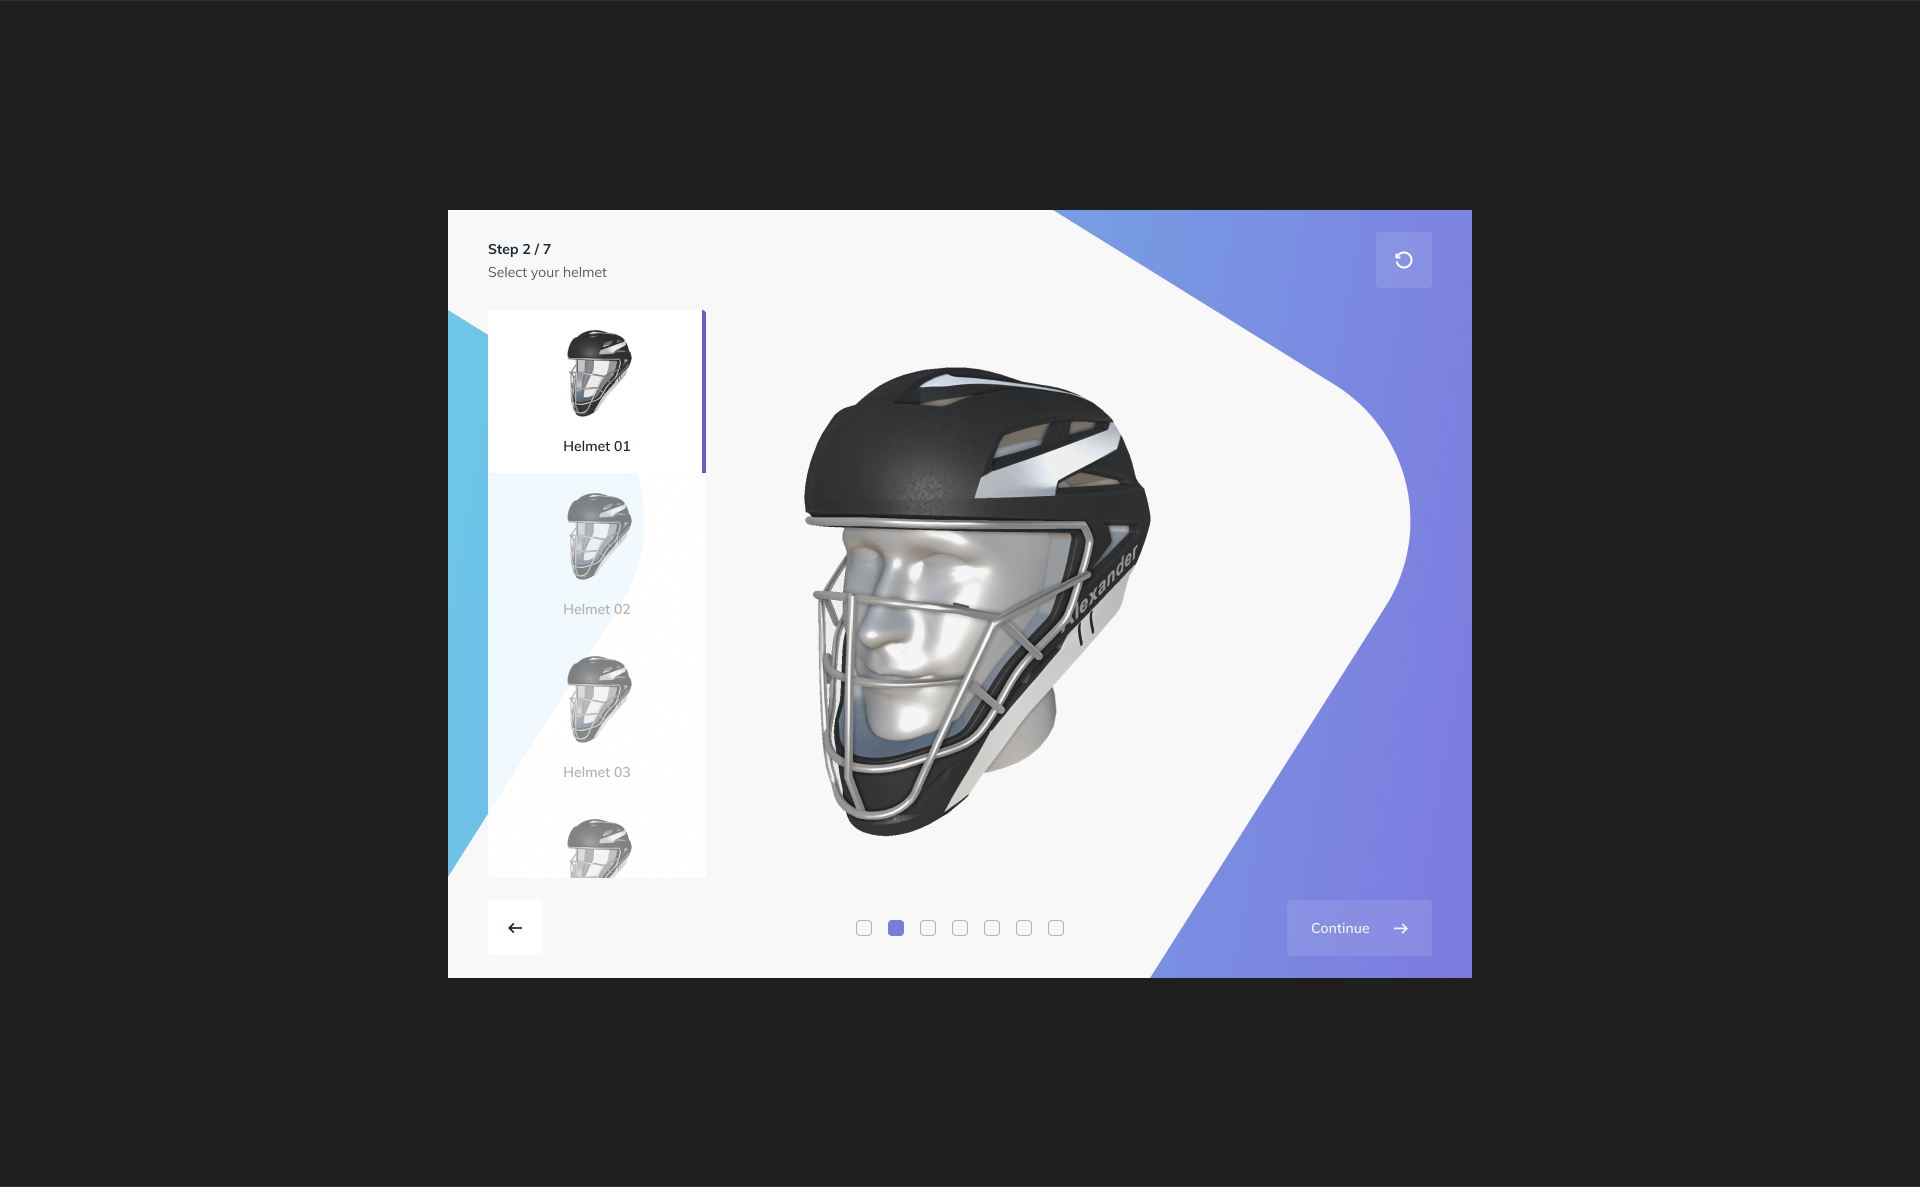 Twikit Sports Helmet selection screen